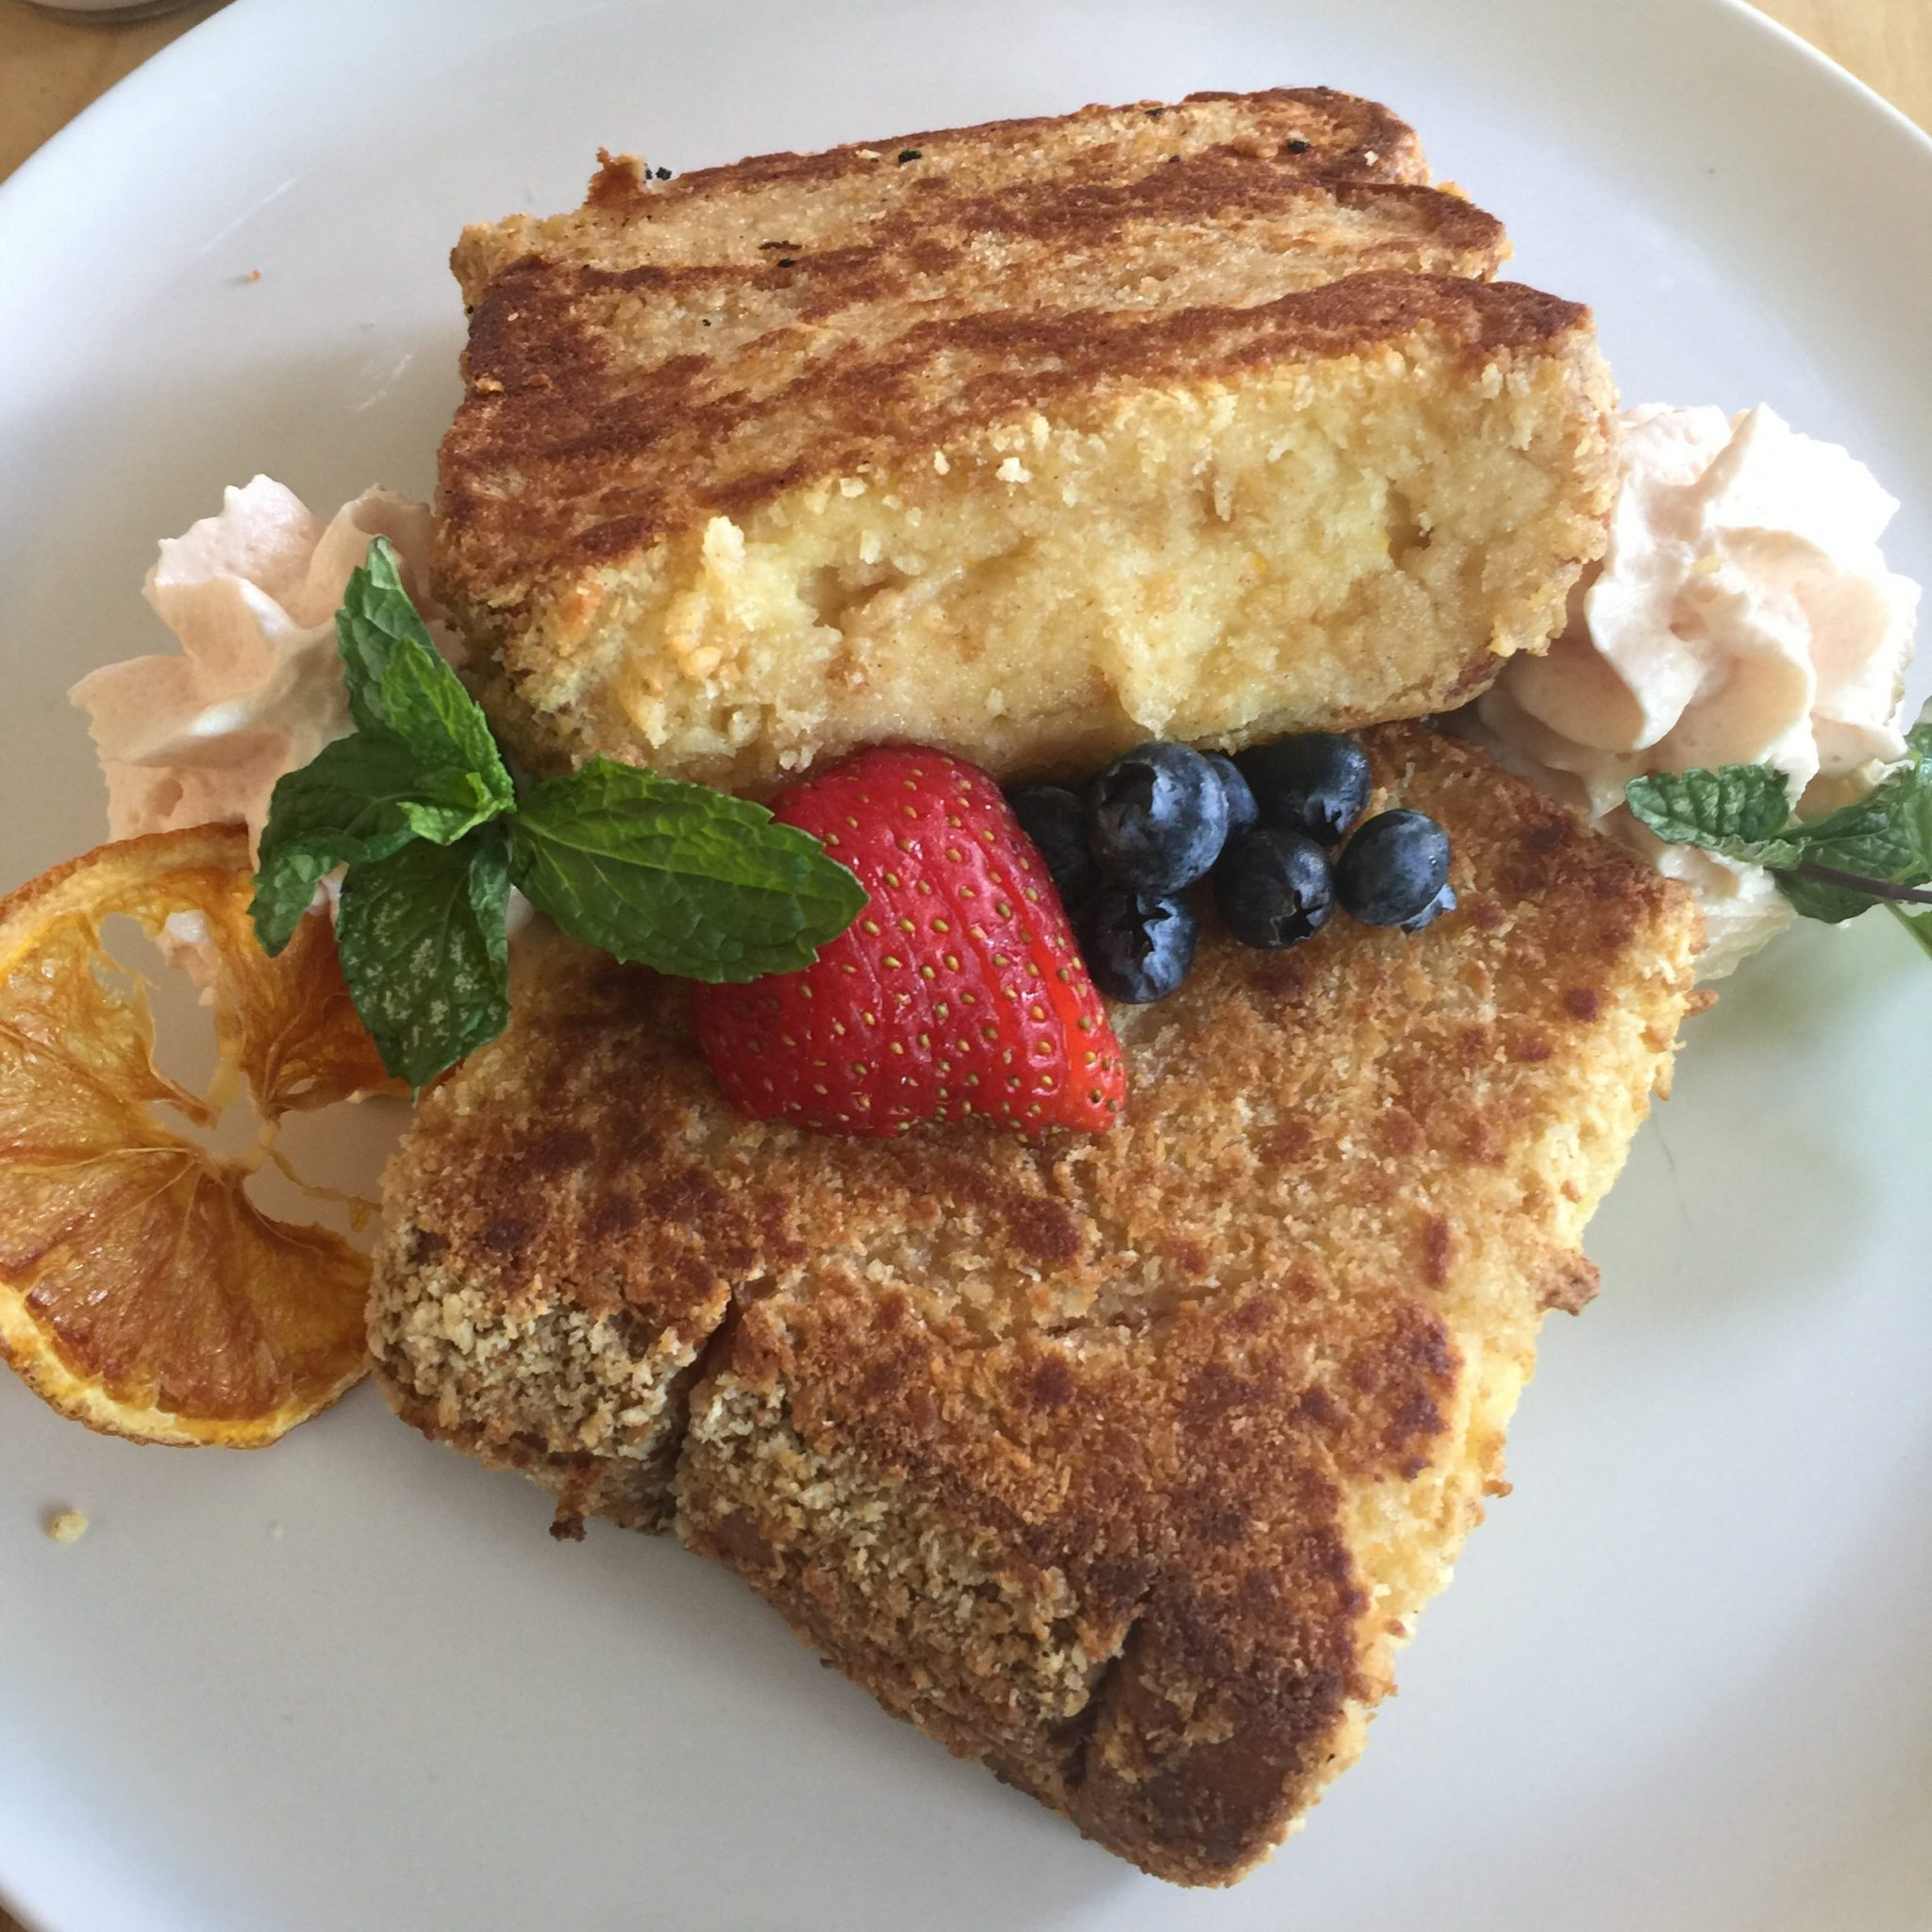 Best Brunch Spots Oahu - Whether you're craving french toast or acai bowls, these are the best spots for brunch on the Hawaiian Island of Oahu - CommuniKait